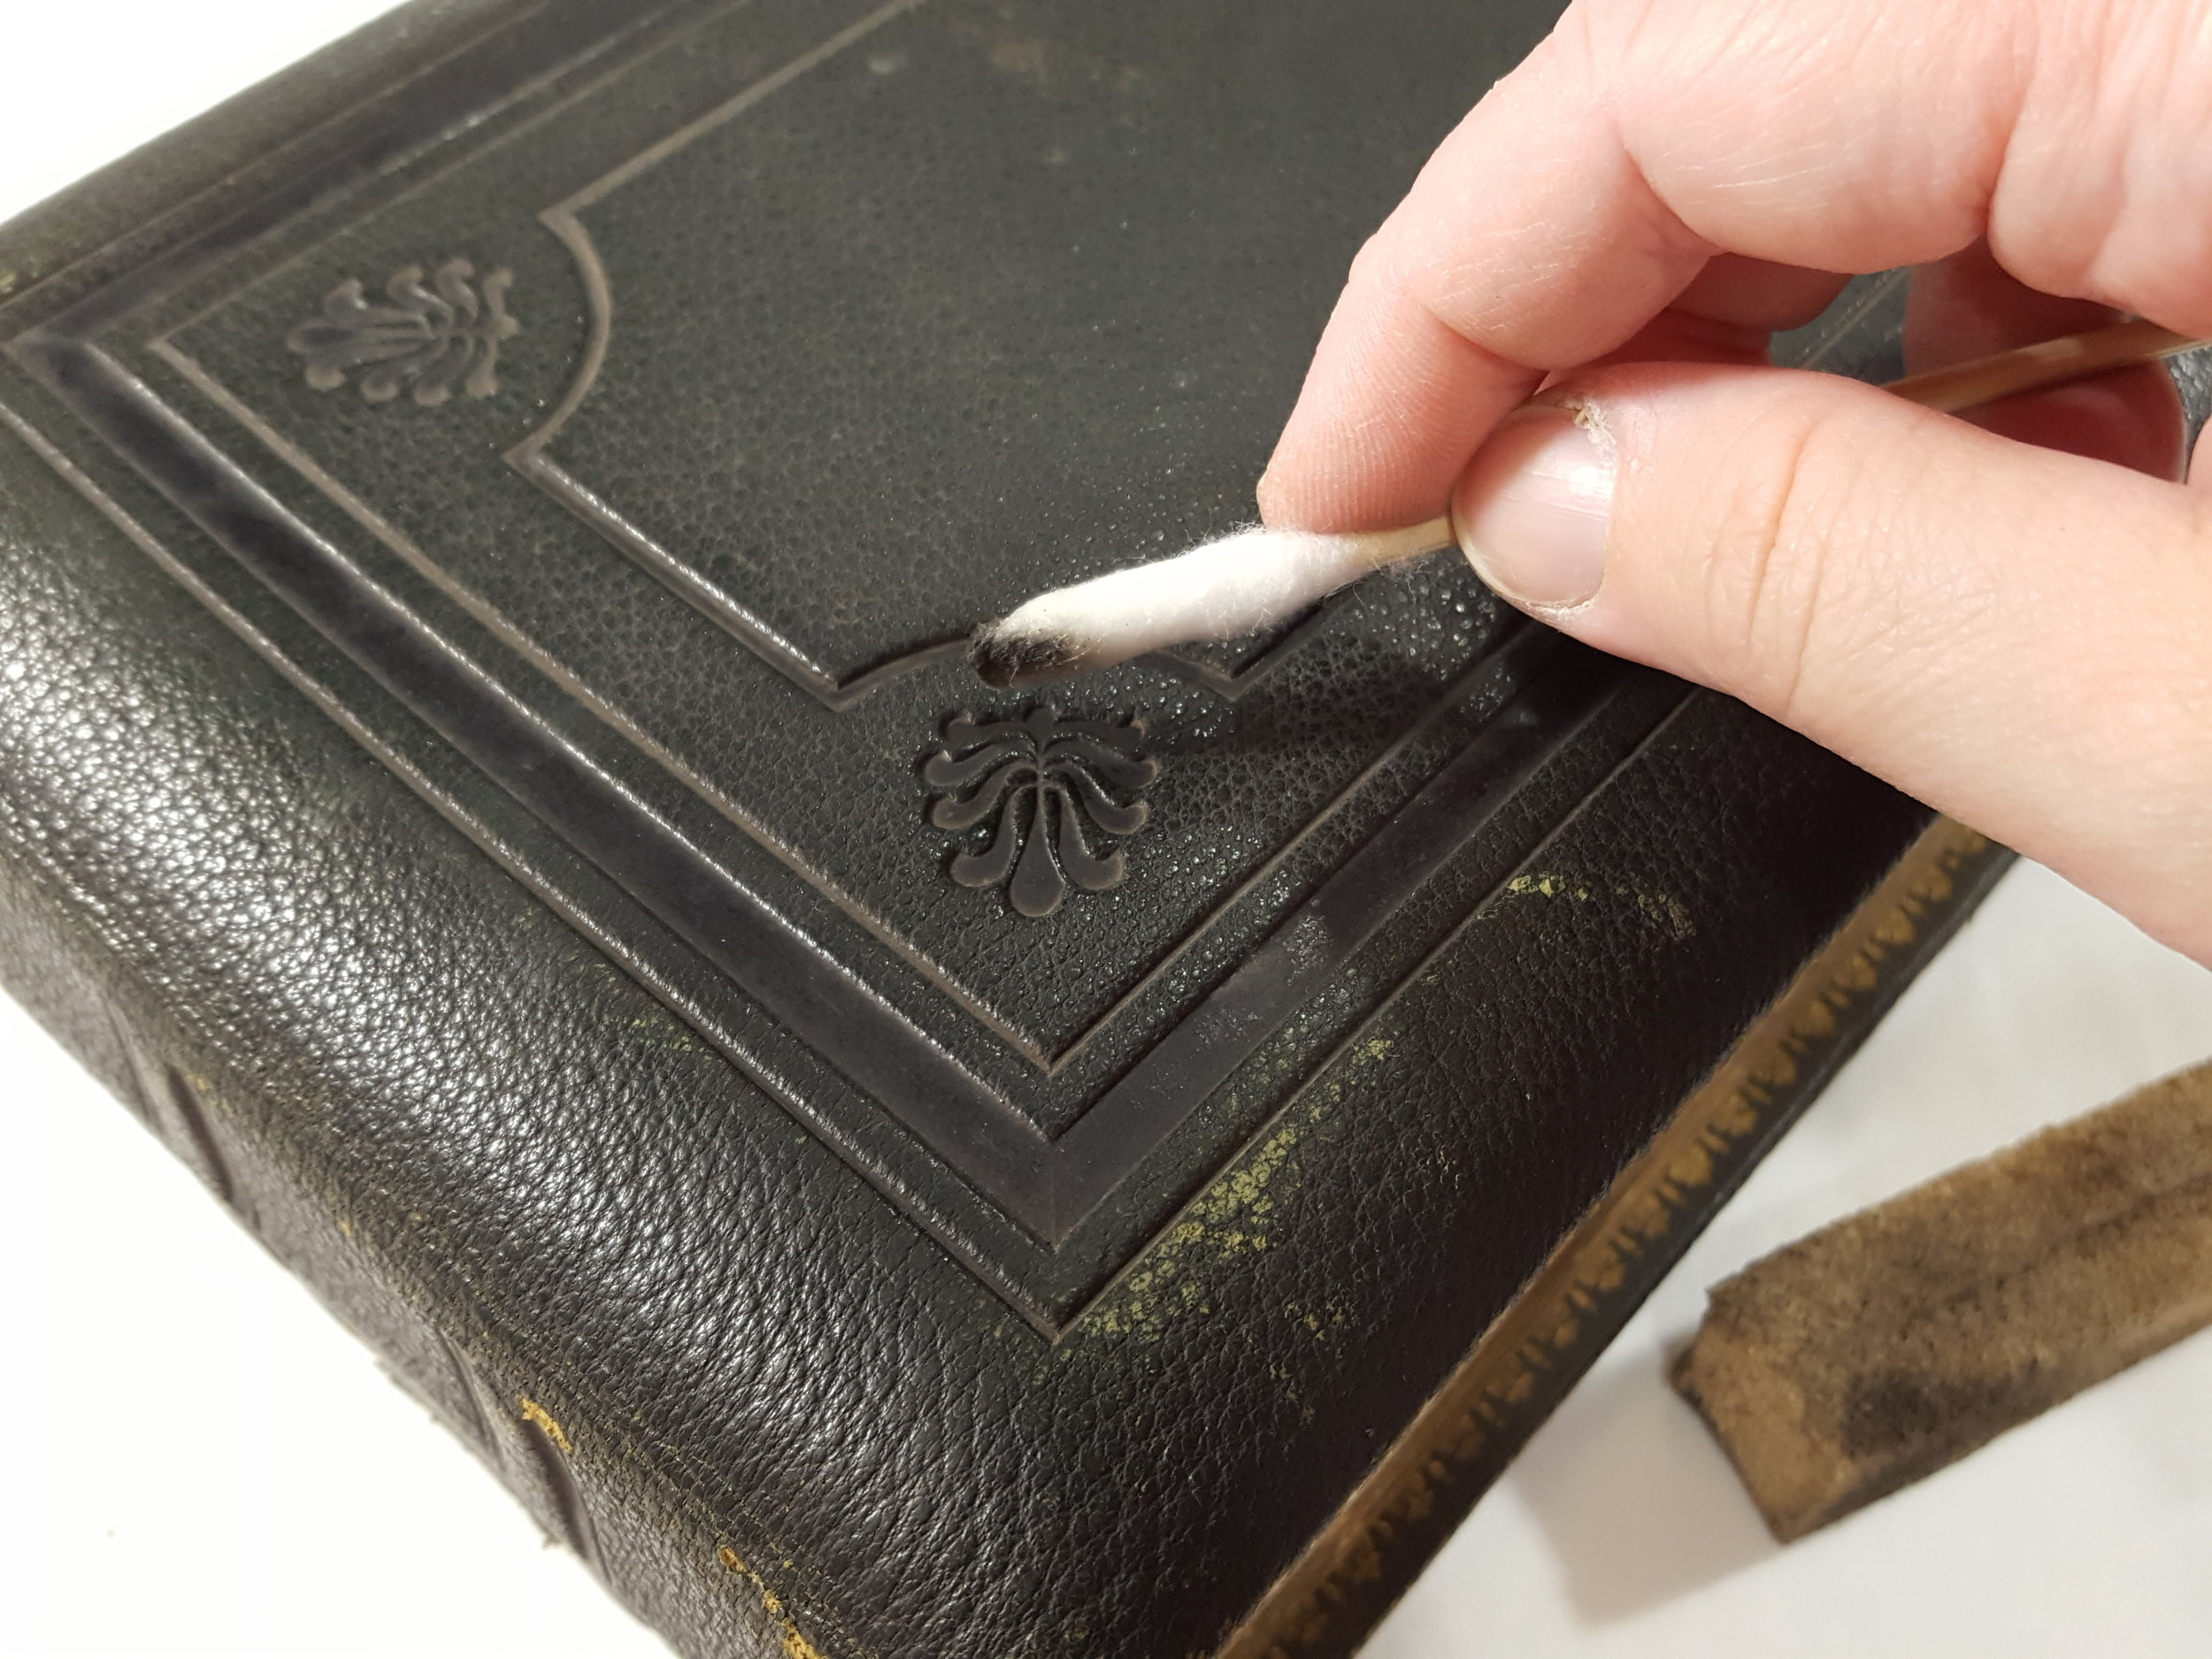 The binding was cleaned to remove surface grime.